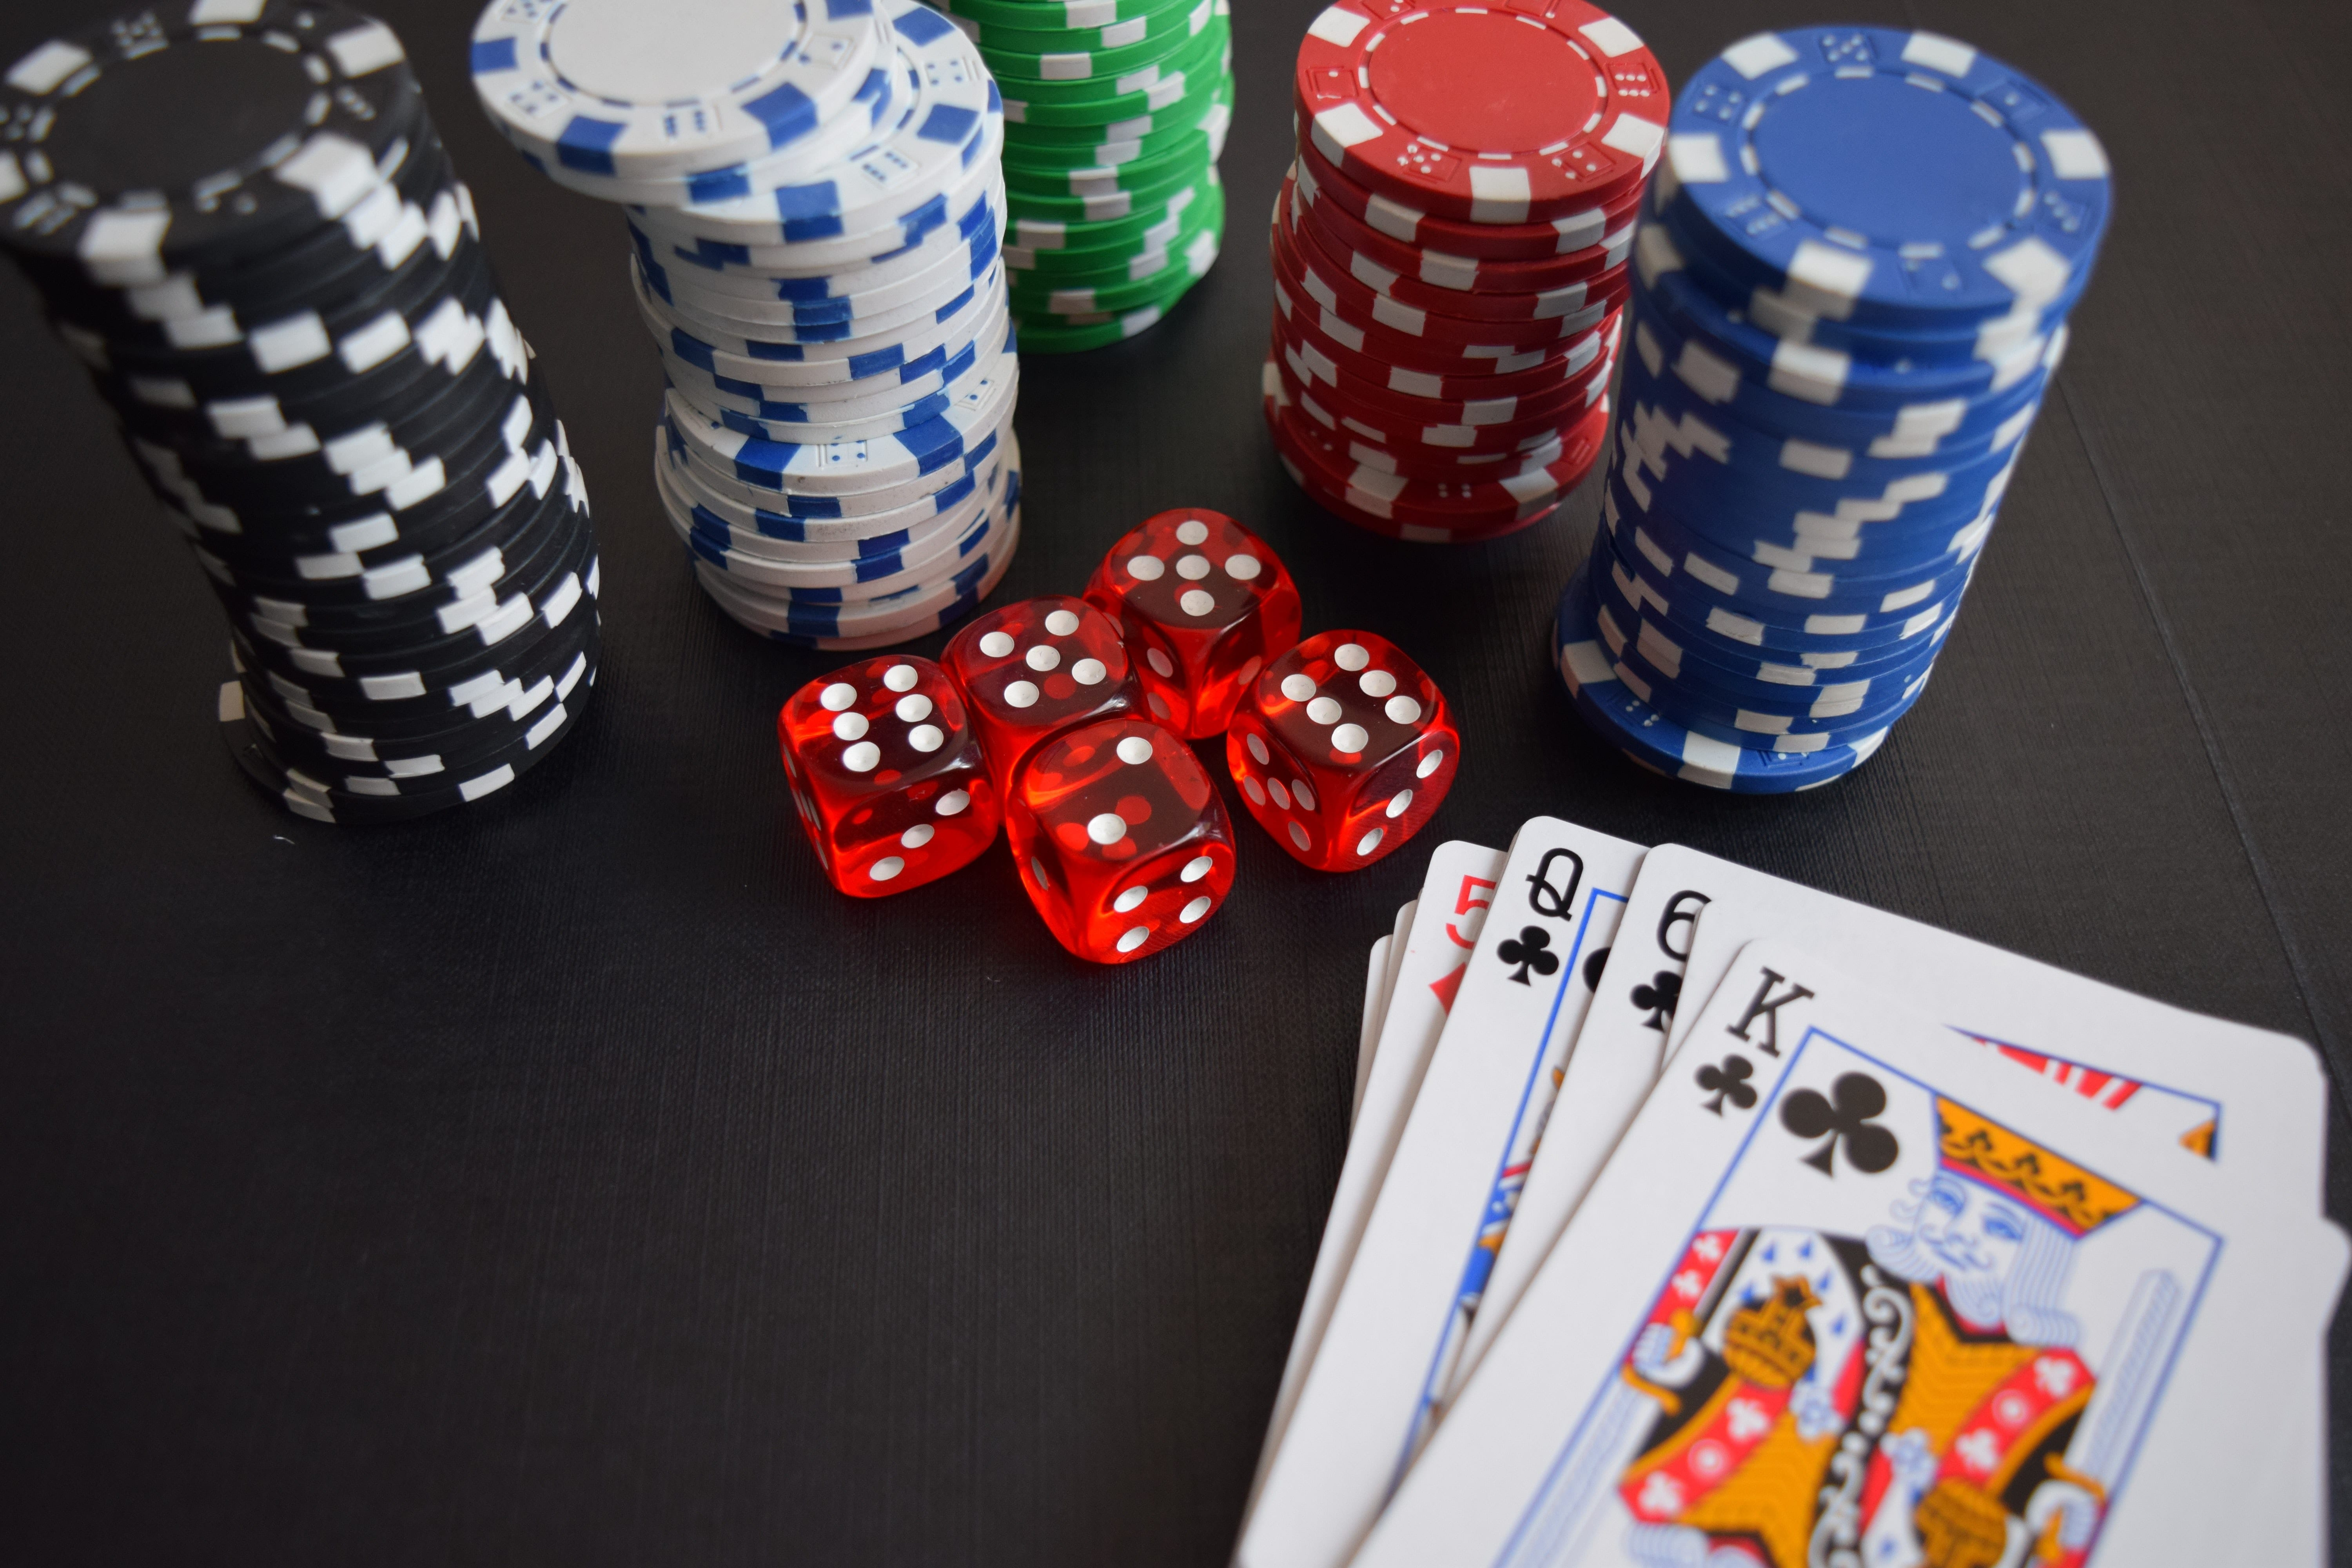 Online Casinos Became More Popular During Quarantine—What to Know